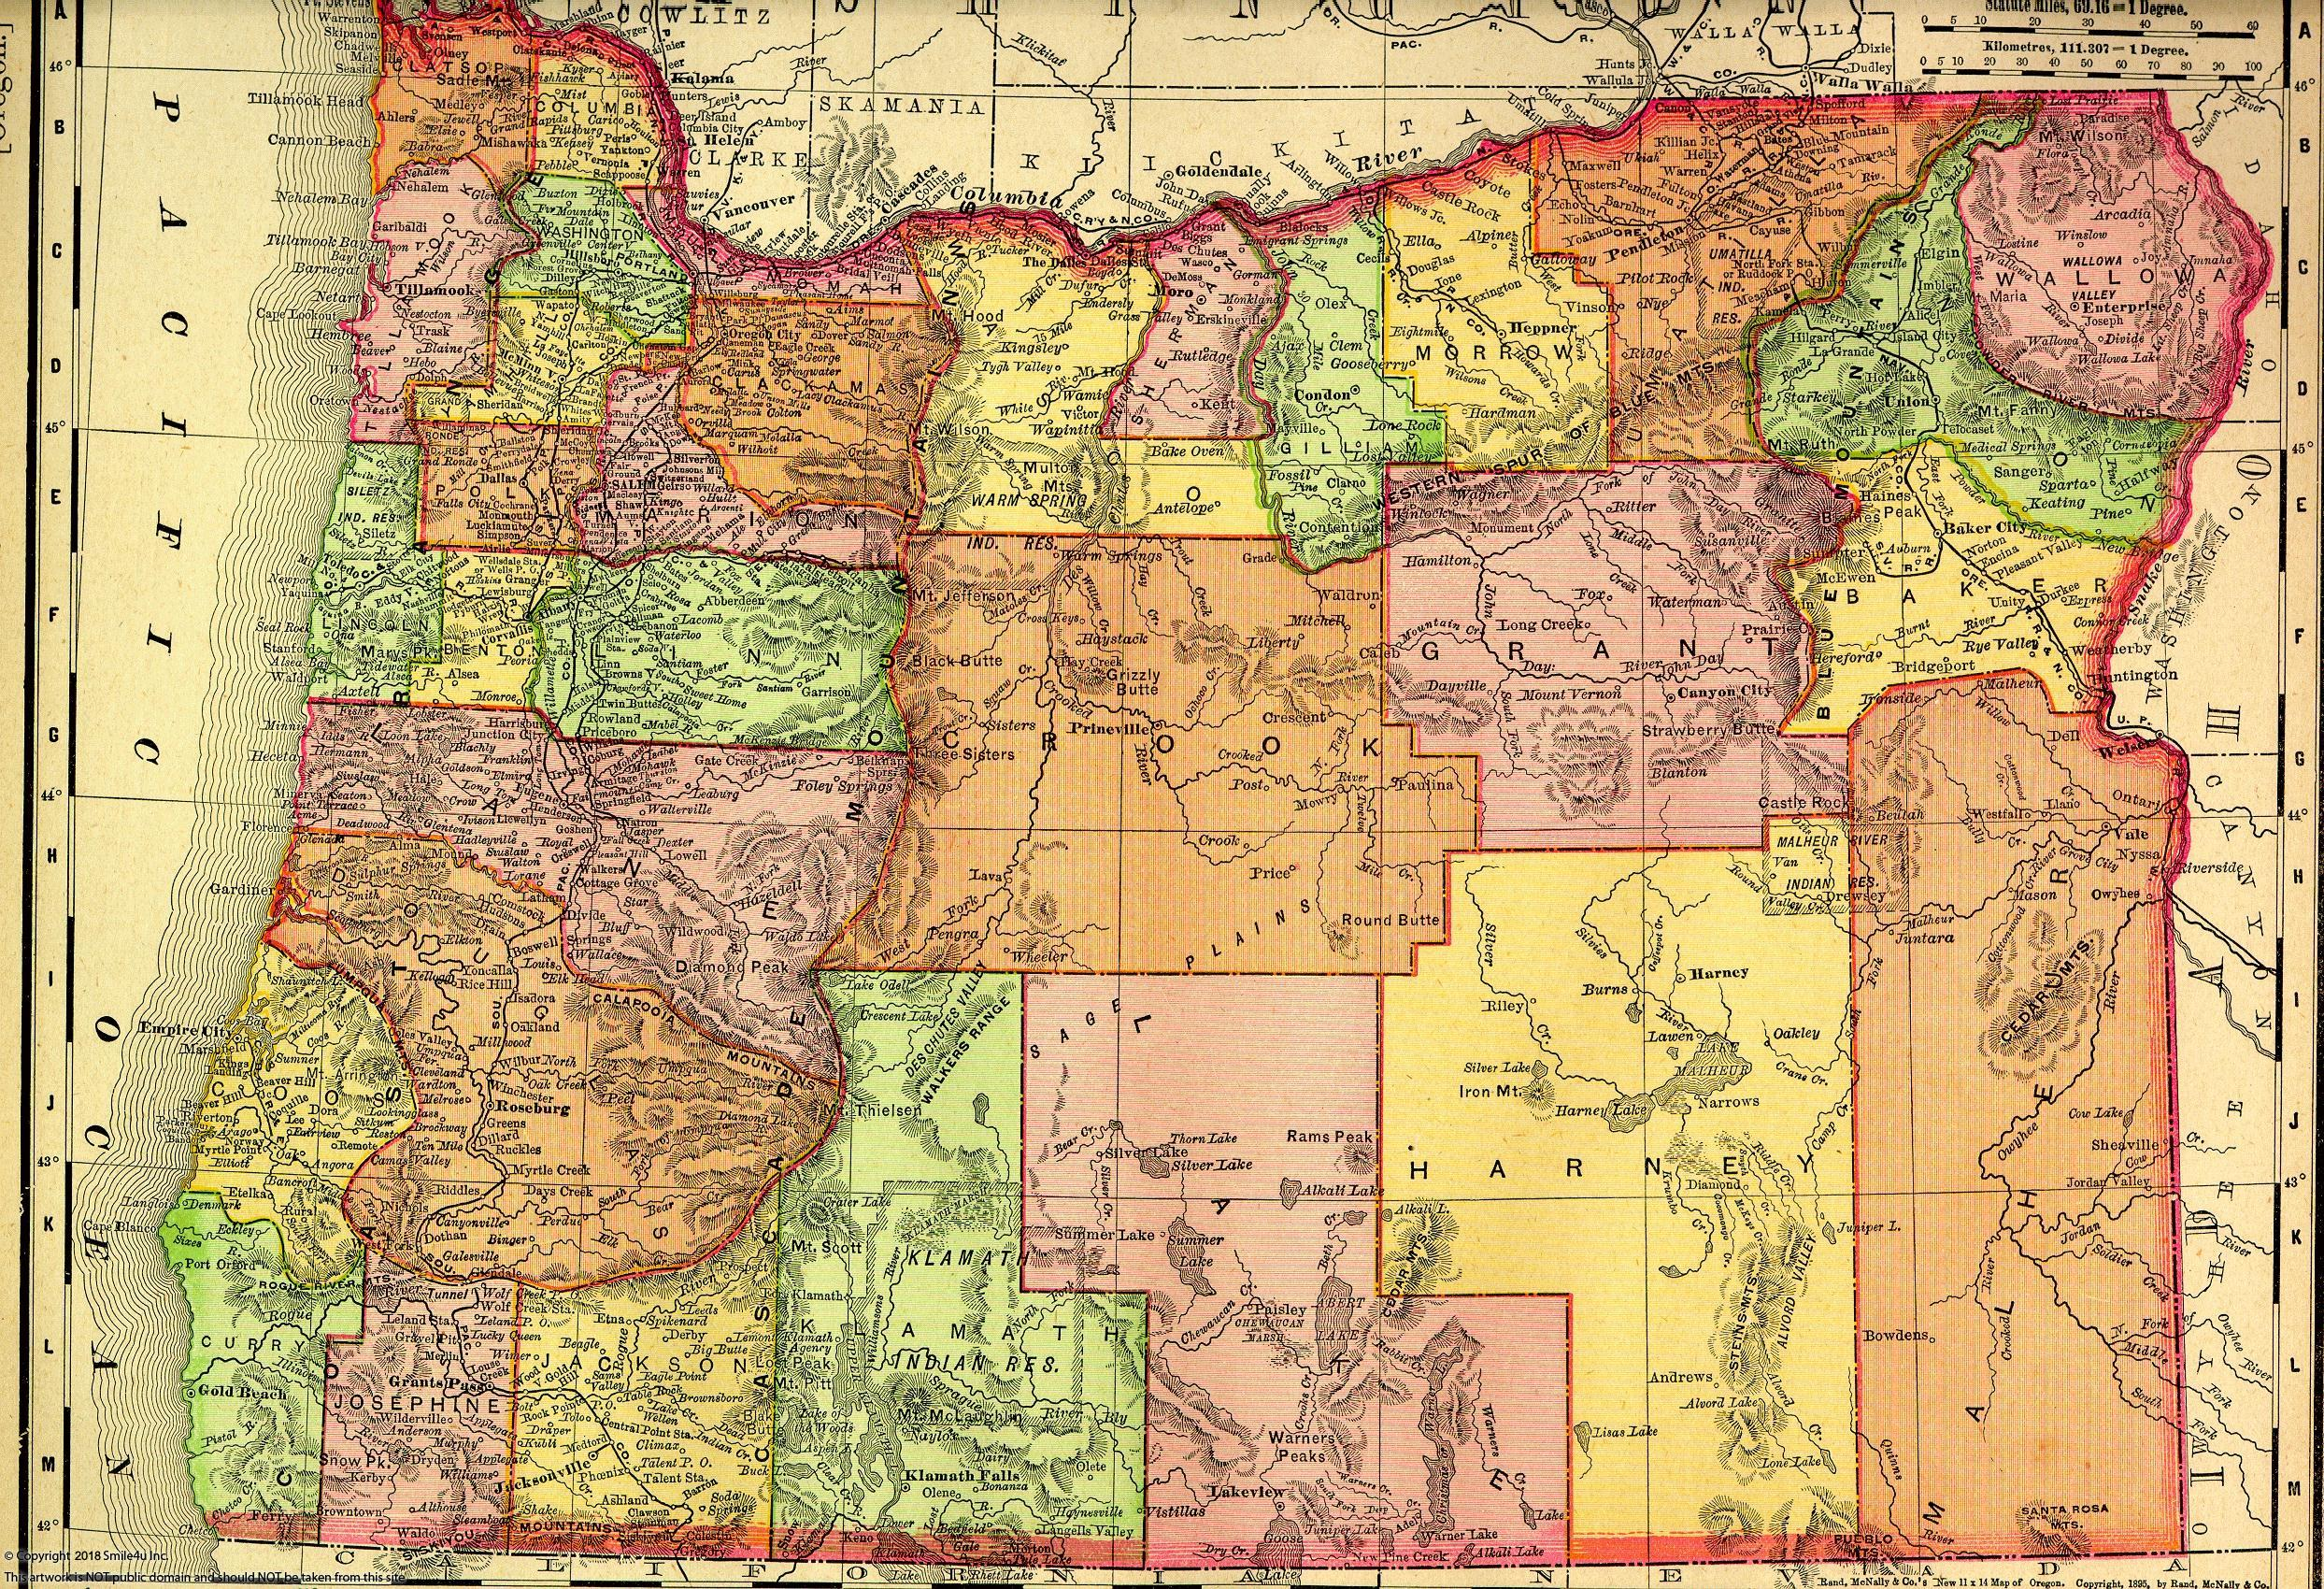 244938_watermarked_1895 historic map.jpg